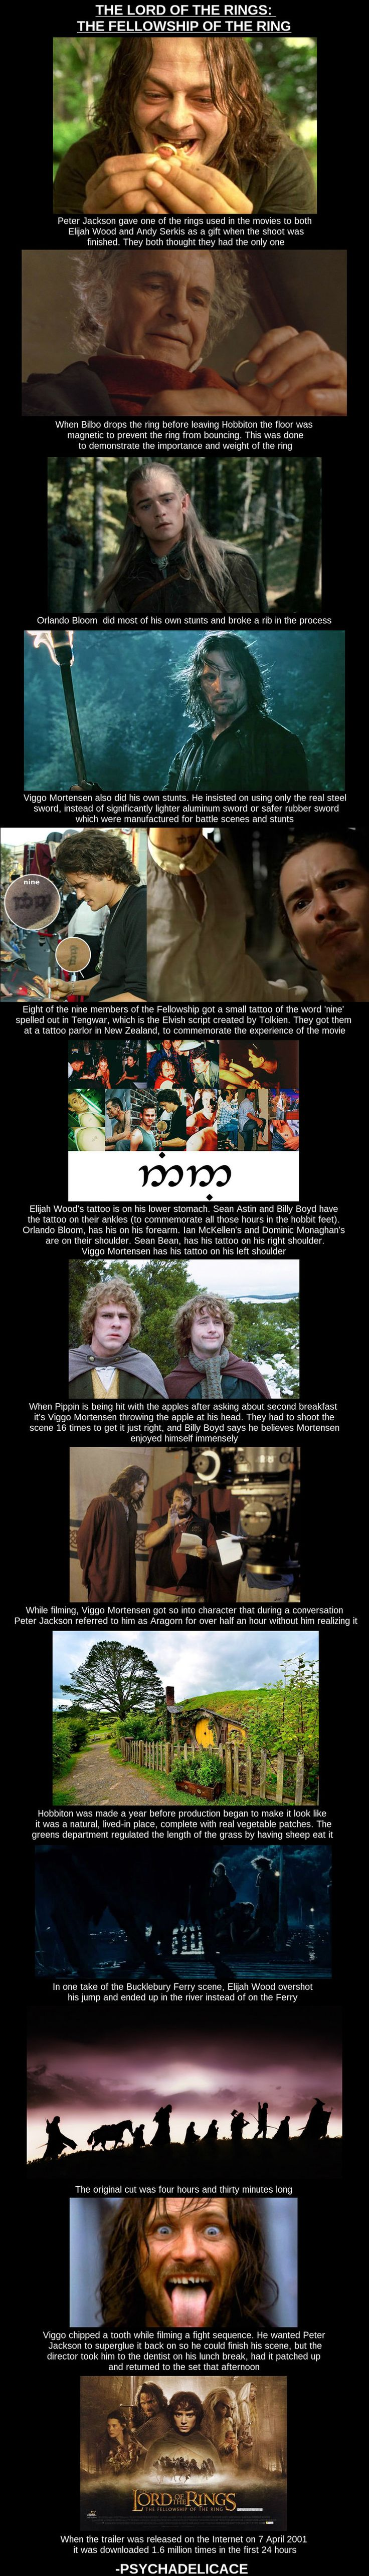 The Fellowship Of The Ring // funny pictures - funny photos - funny images - funny pics - funny quotes - #lol #humor #funnypictures